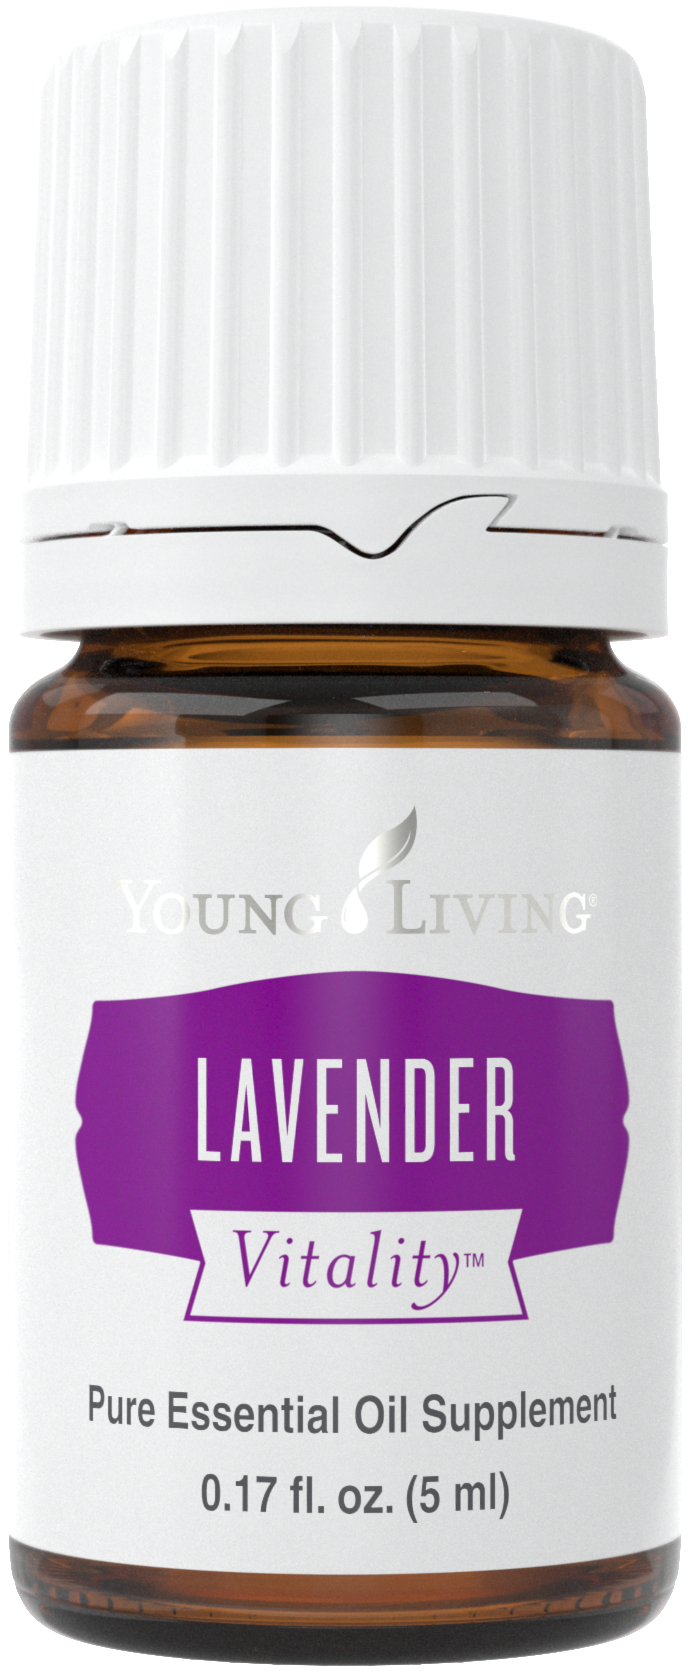 Lavender Vitality Essential Oil - Young Living Lavender Life Blog